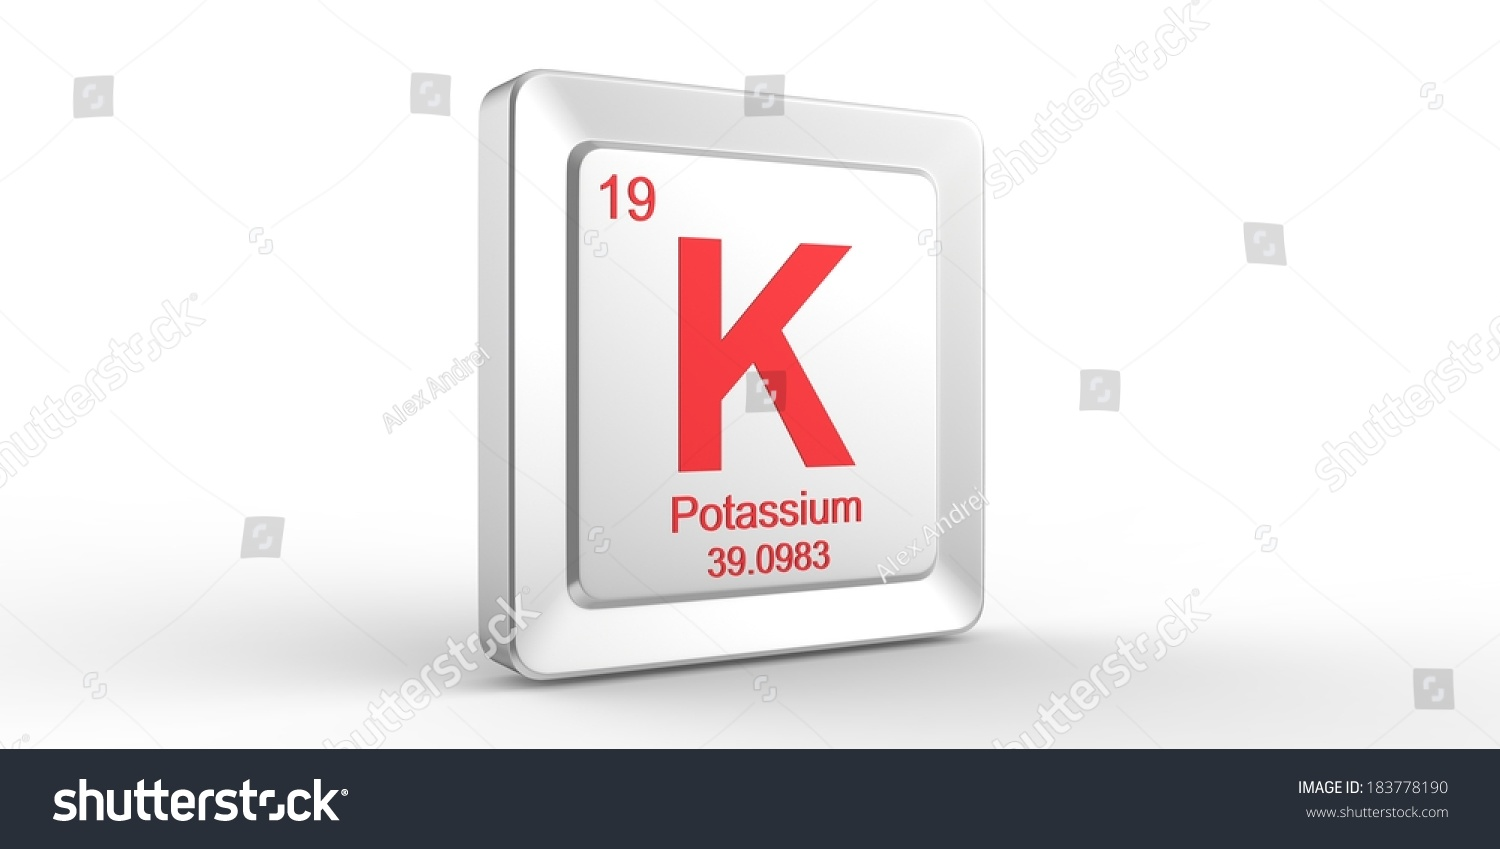 K symbol 19 material potassium chemical stock illustration k symbol 19 material for potassium chemical element of the periodic table gamestrikefo Choice Image